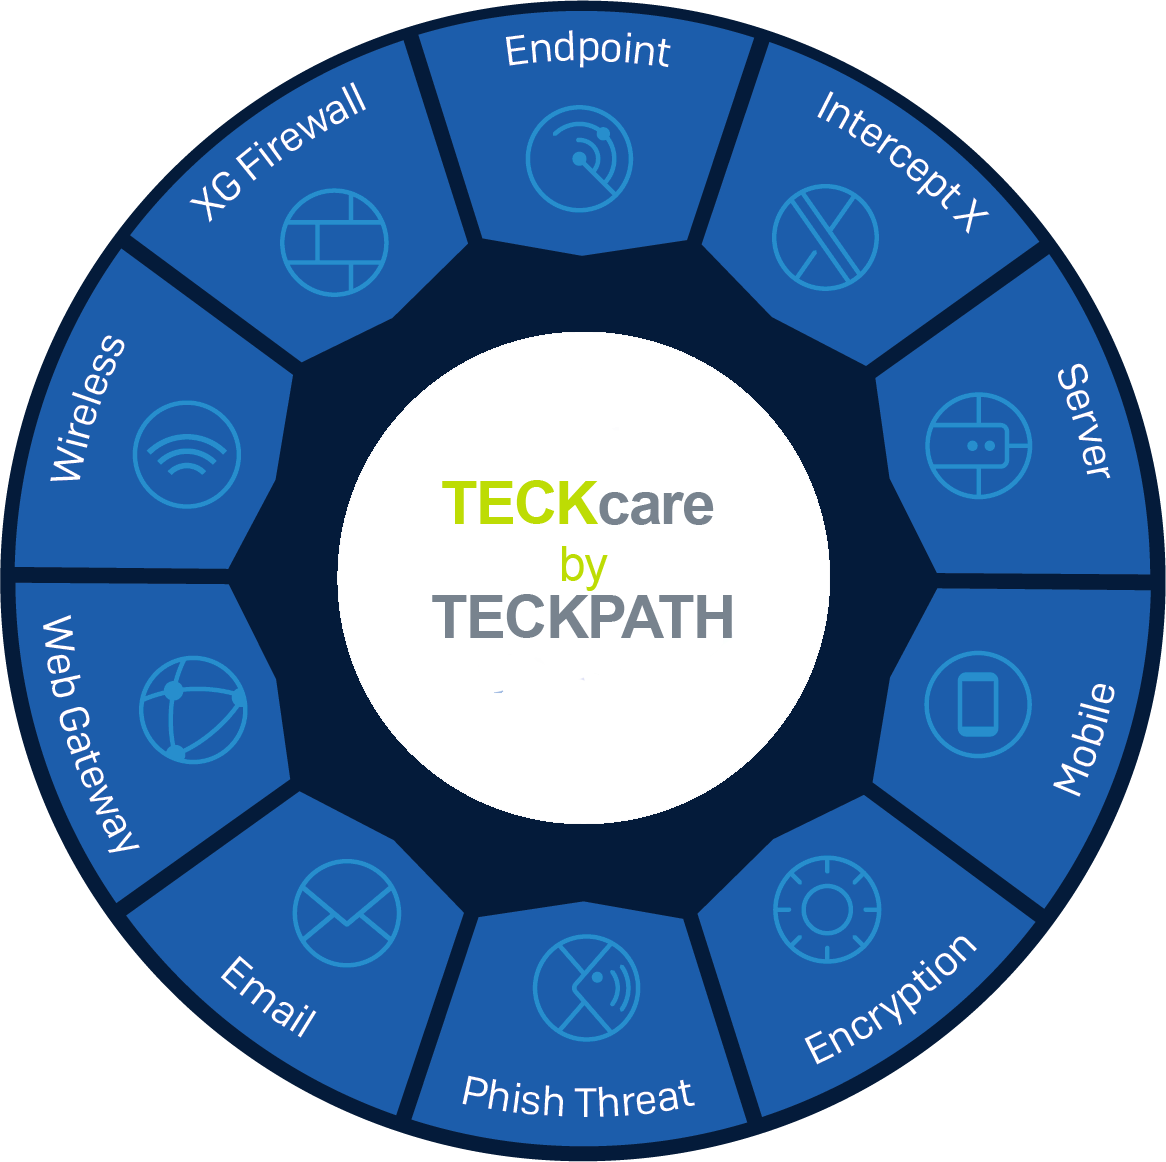 TeckPath web filtering and content monitoring